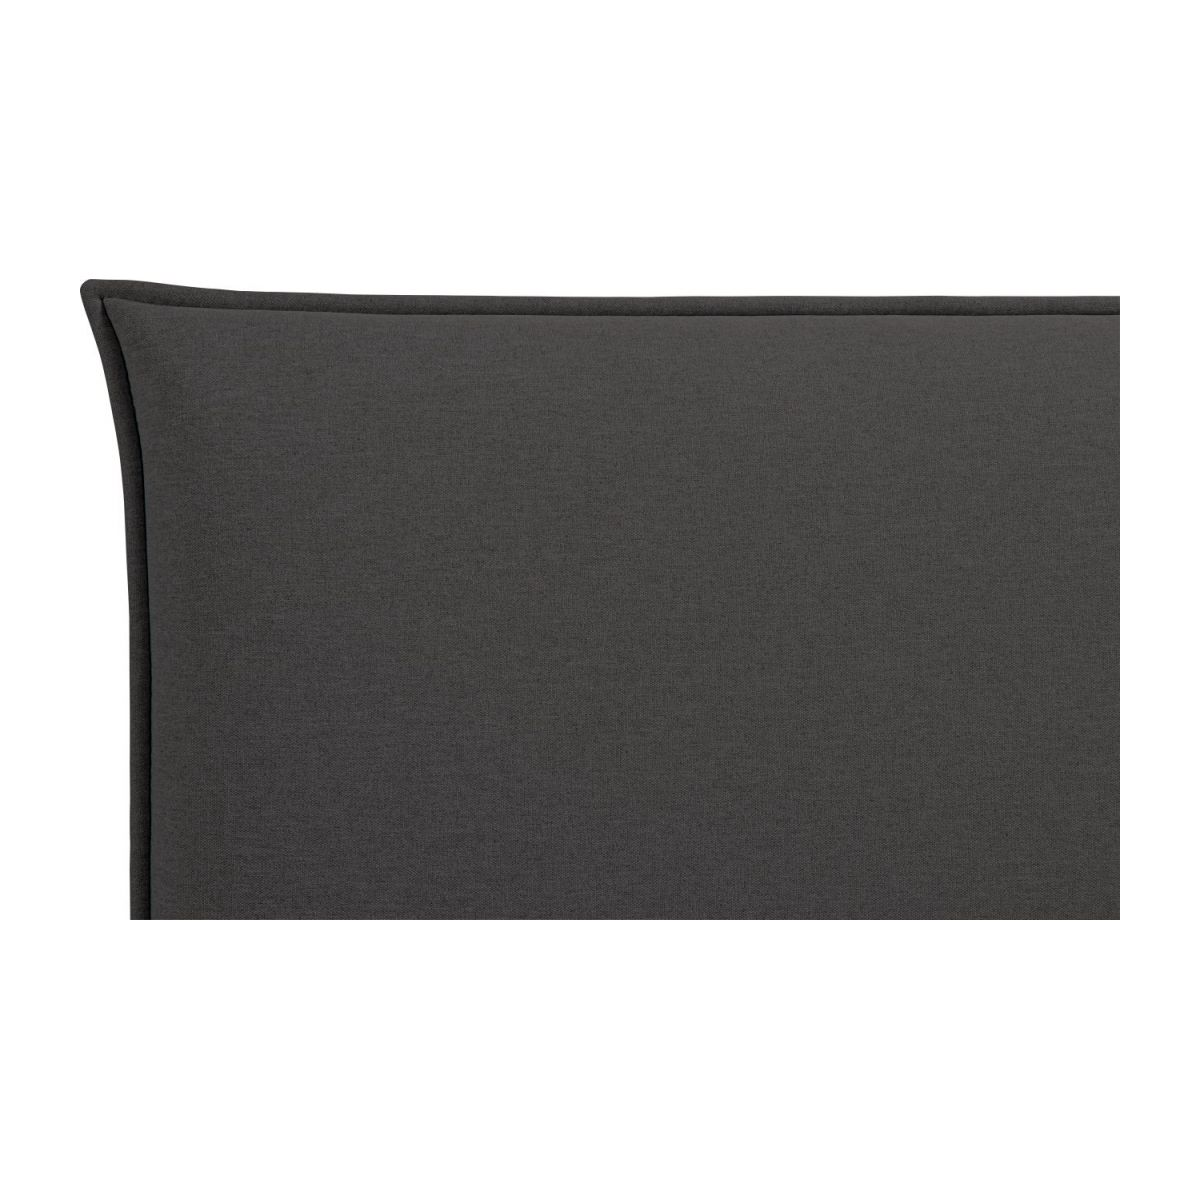 Headboard for 140cm box spring in fabric, anthracite n°4